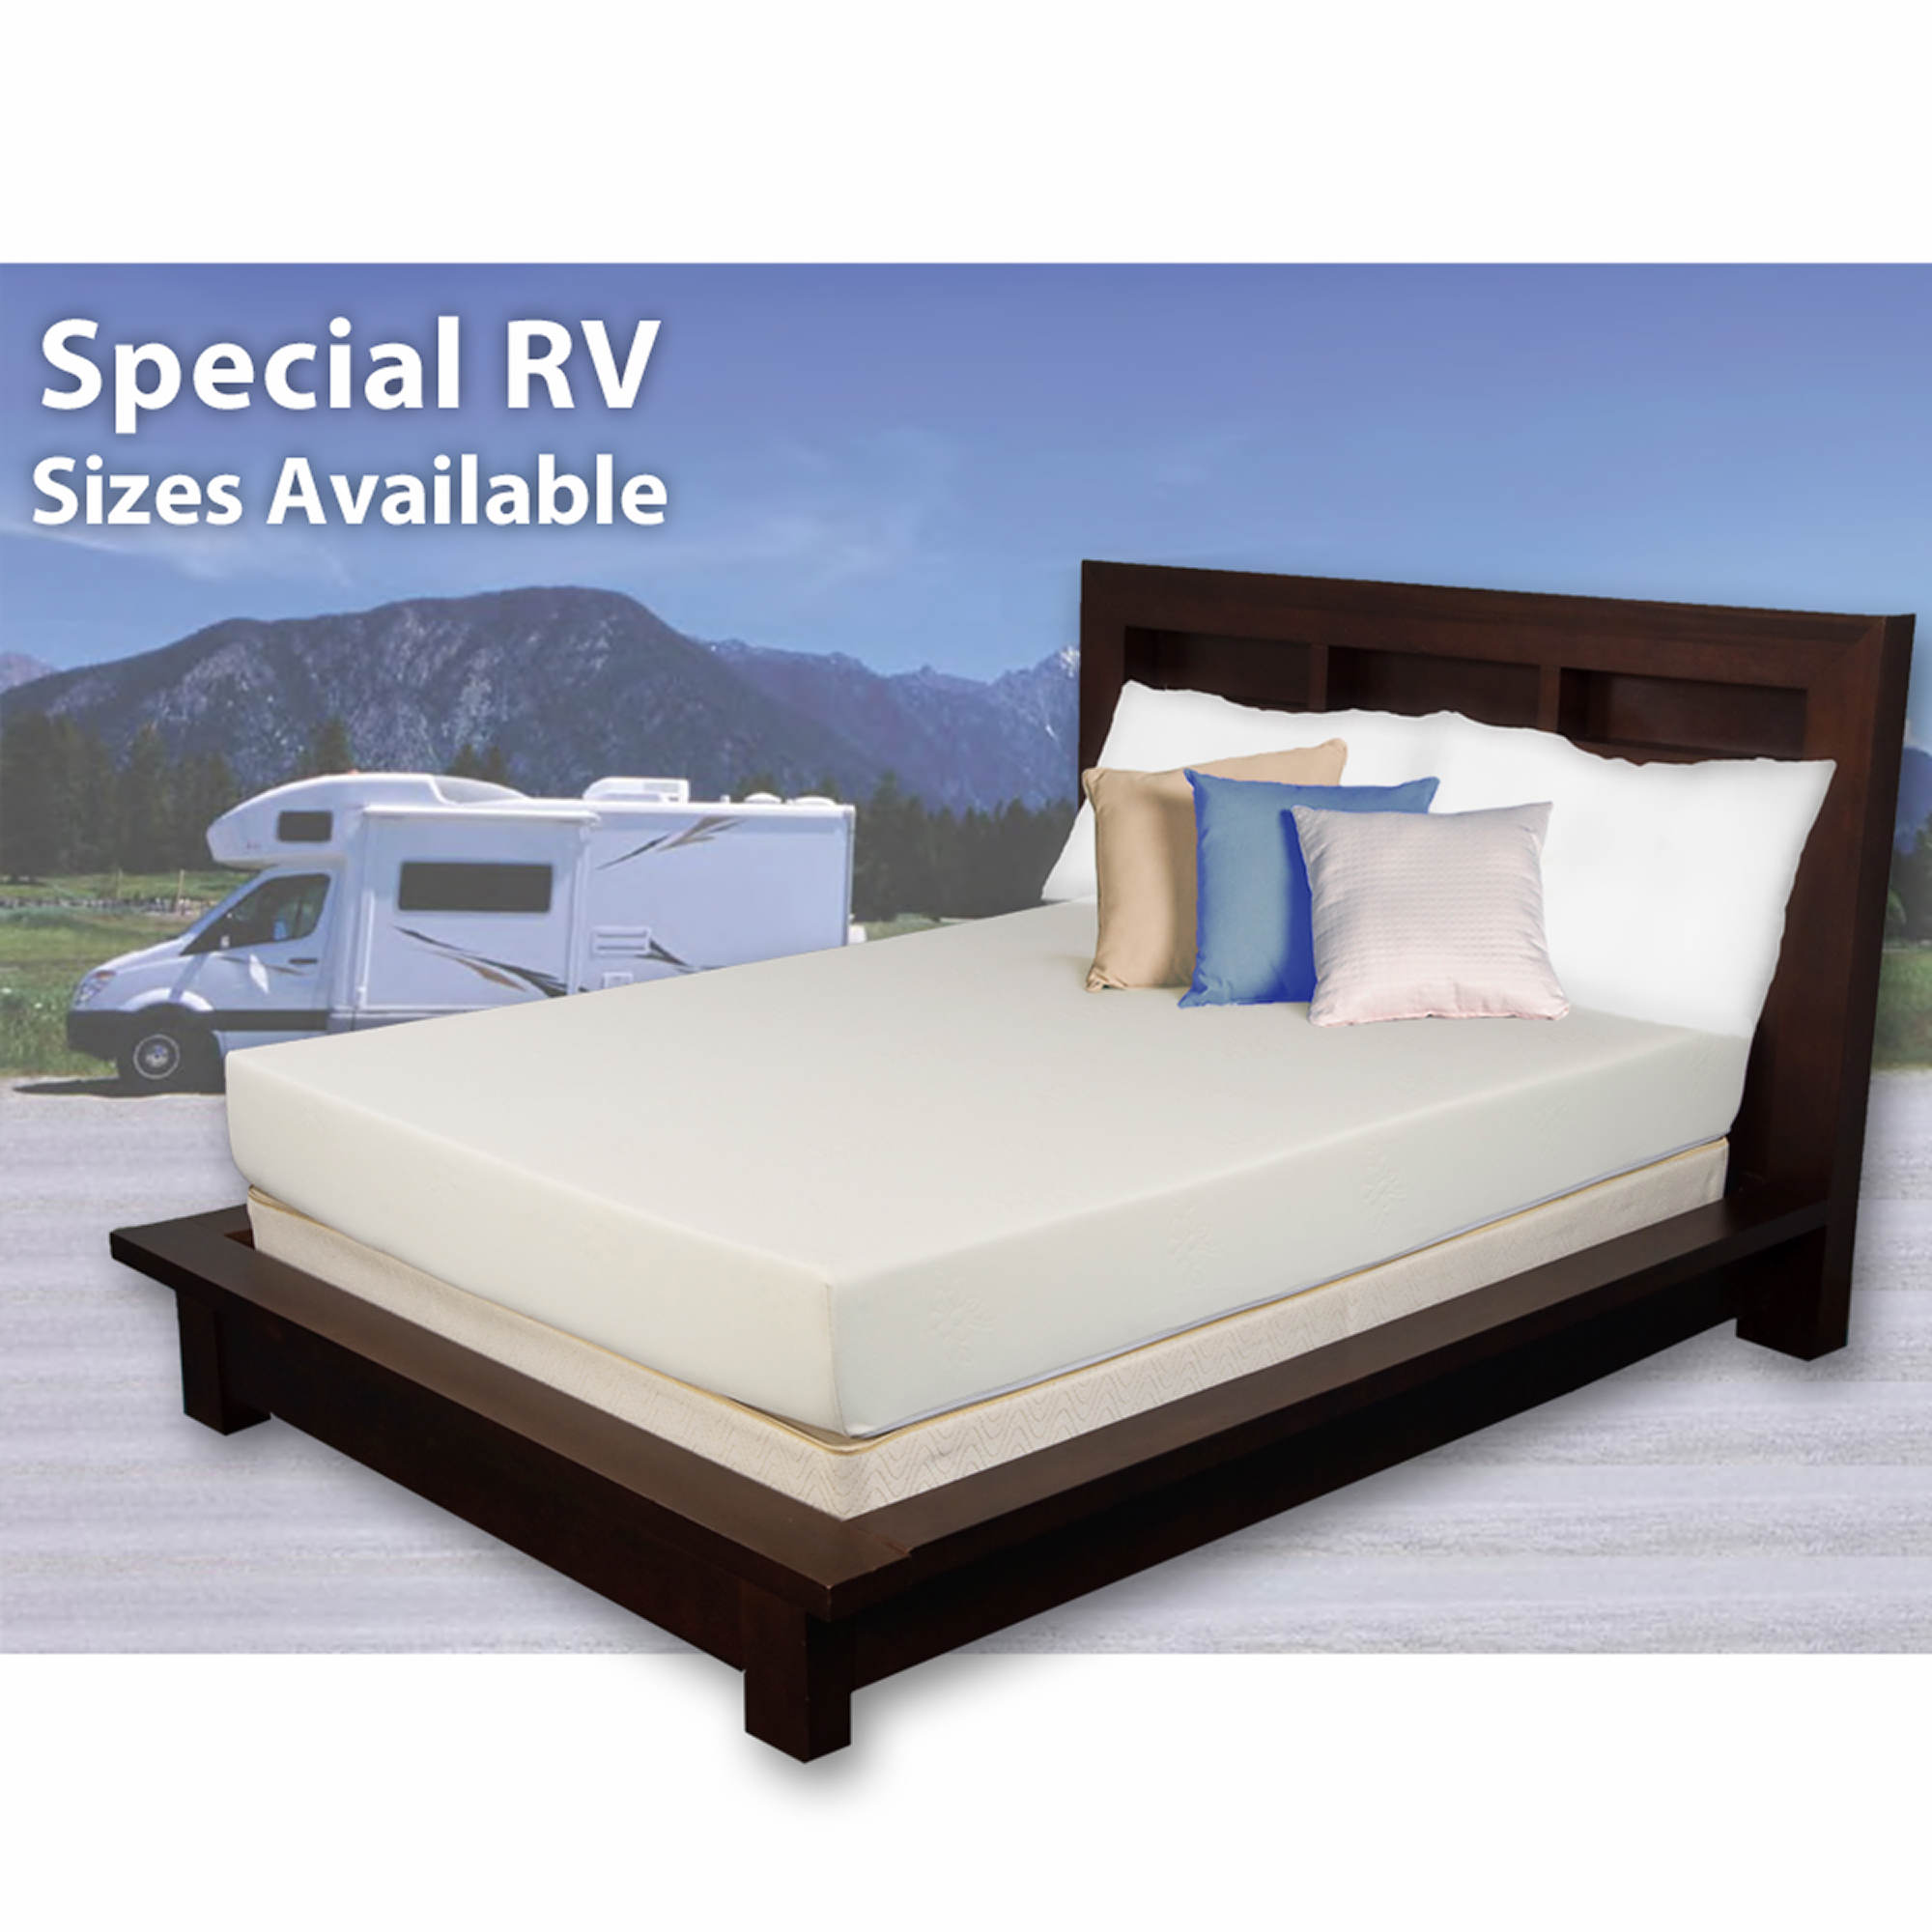 garden foam home and overstock comfort hybrid today inch free full product size memories spring shipping mattress